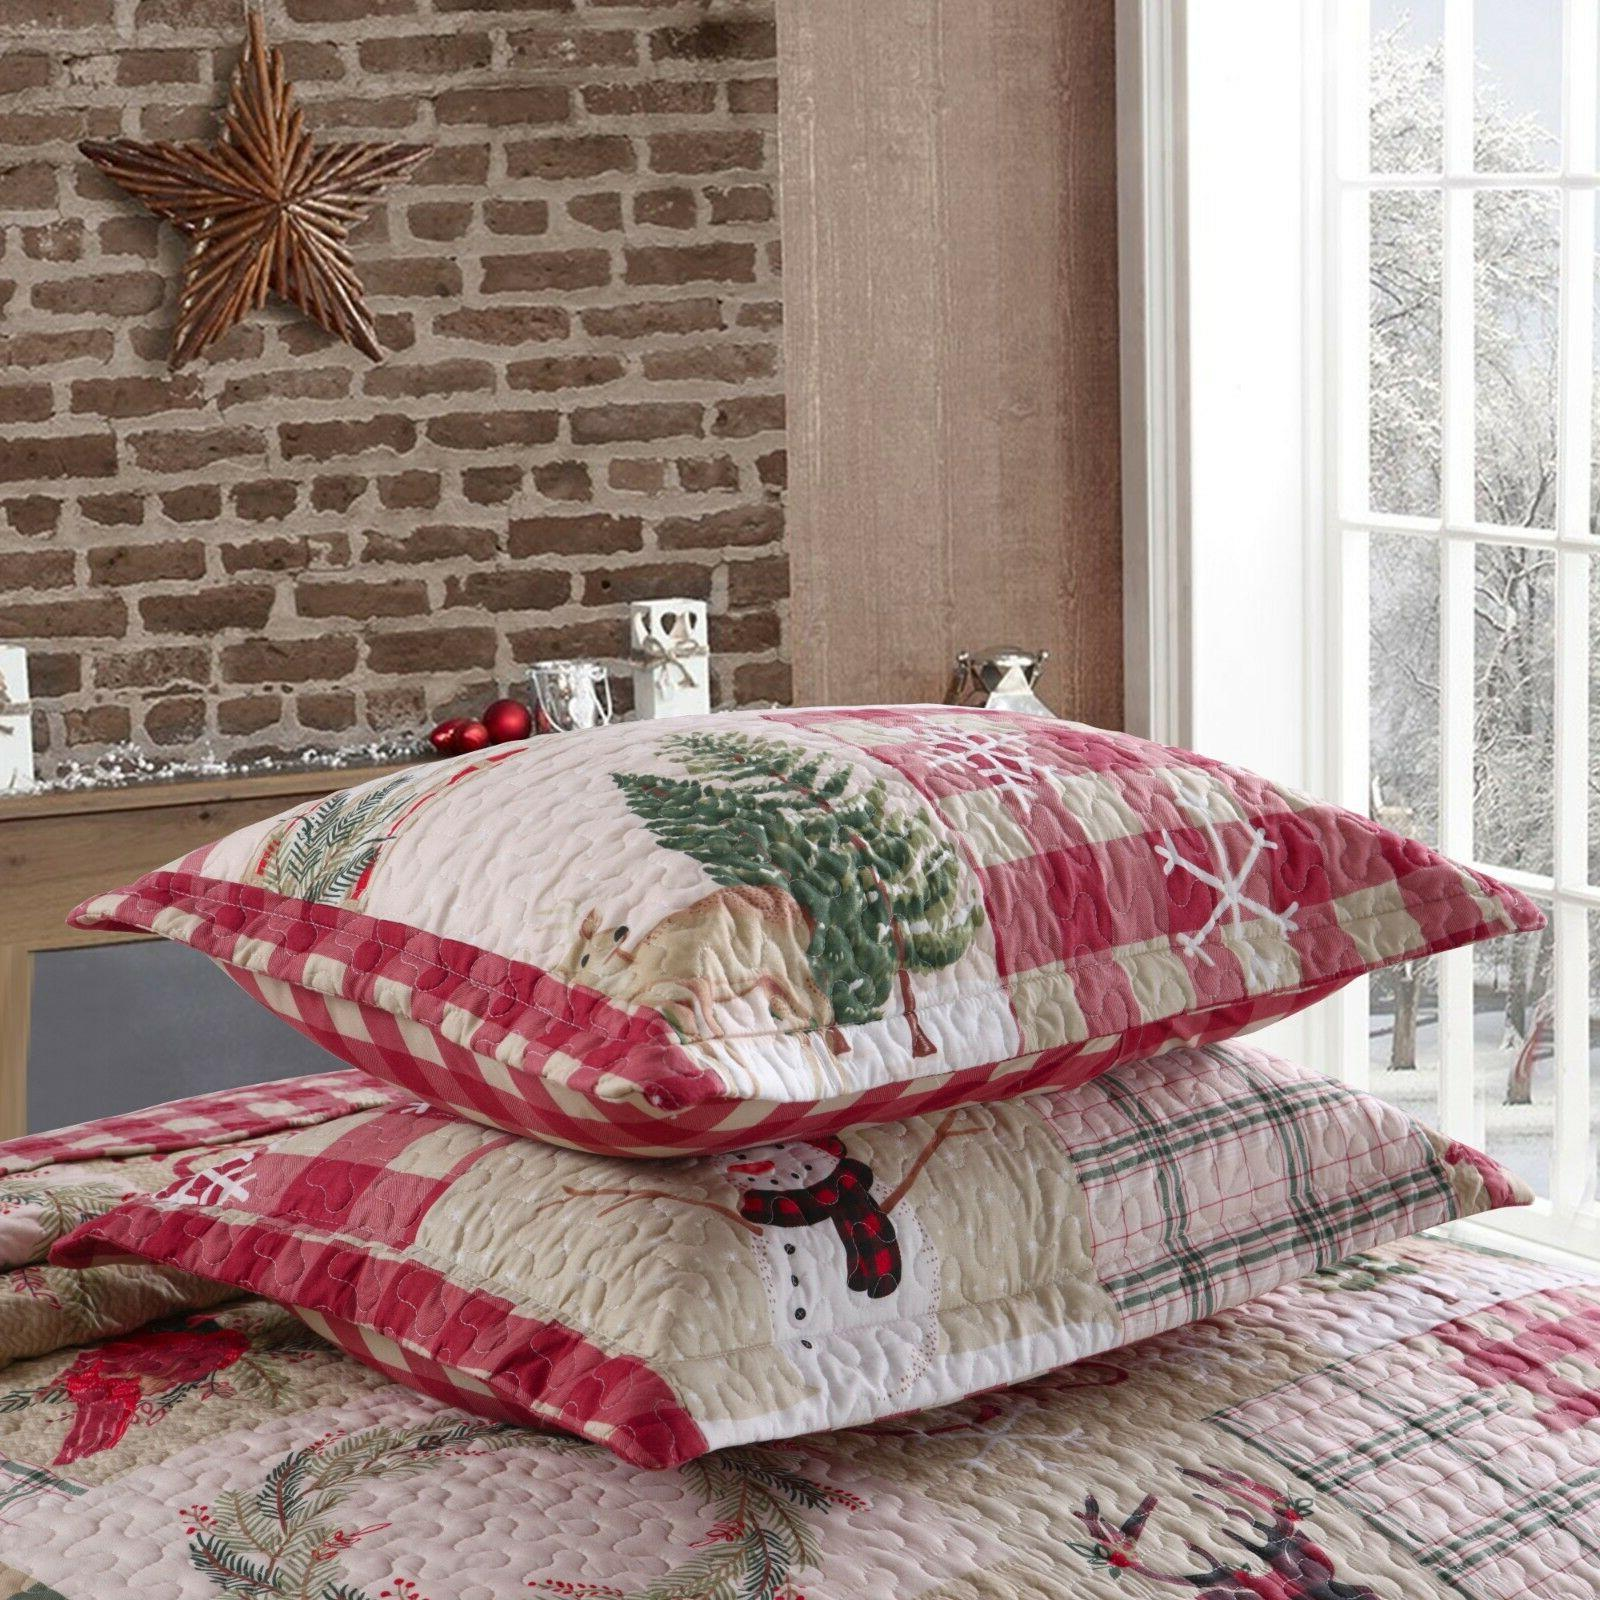 3 Christmas Rustic Lodge Cabin Bedspread Quilt Snow Man